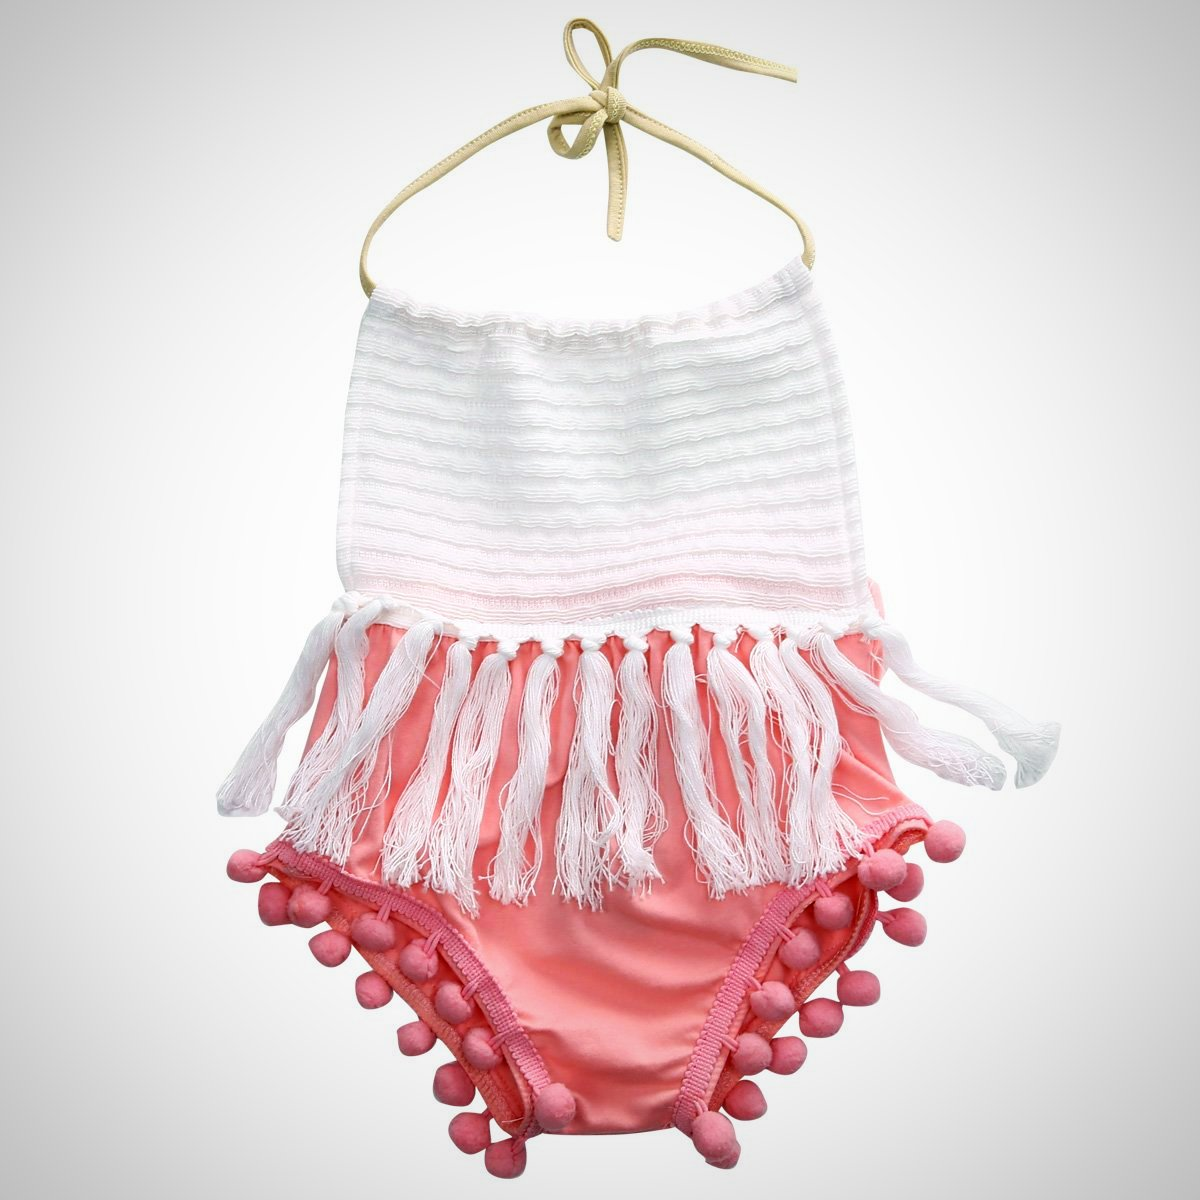 Baby Girls fashion Tassels Strap - Juniorshopstyle